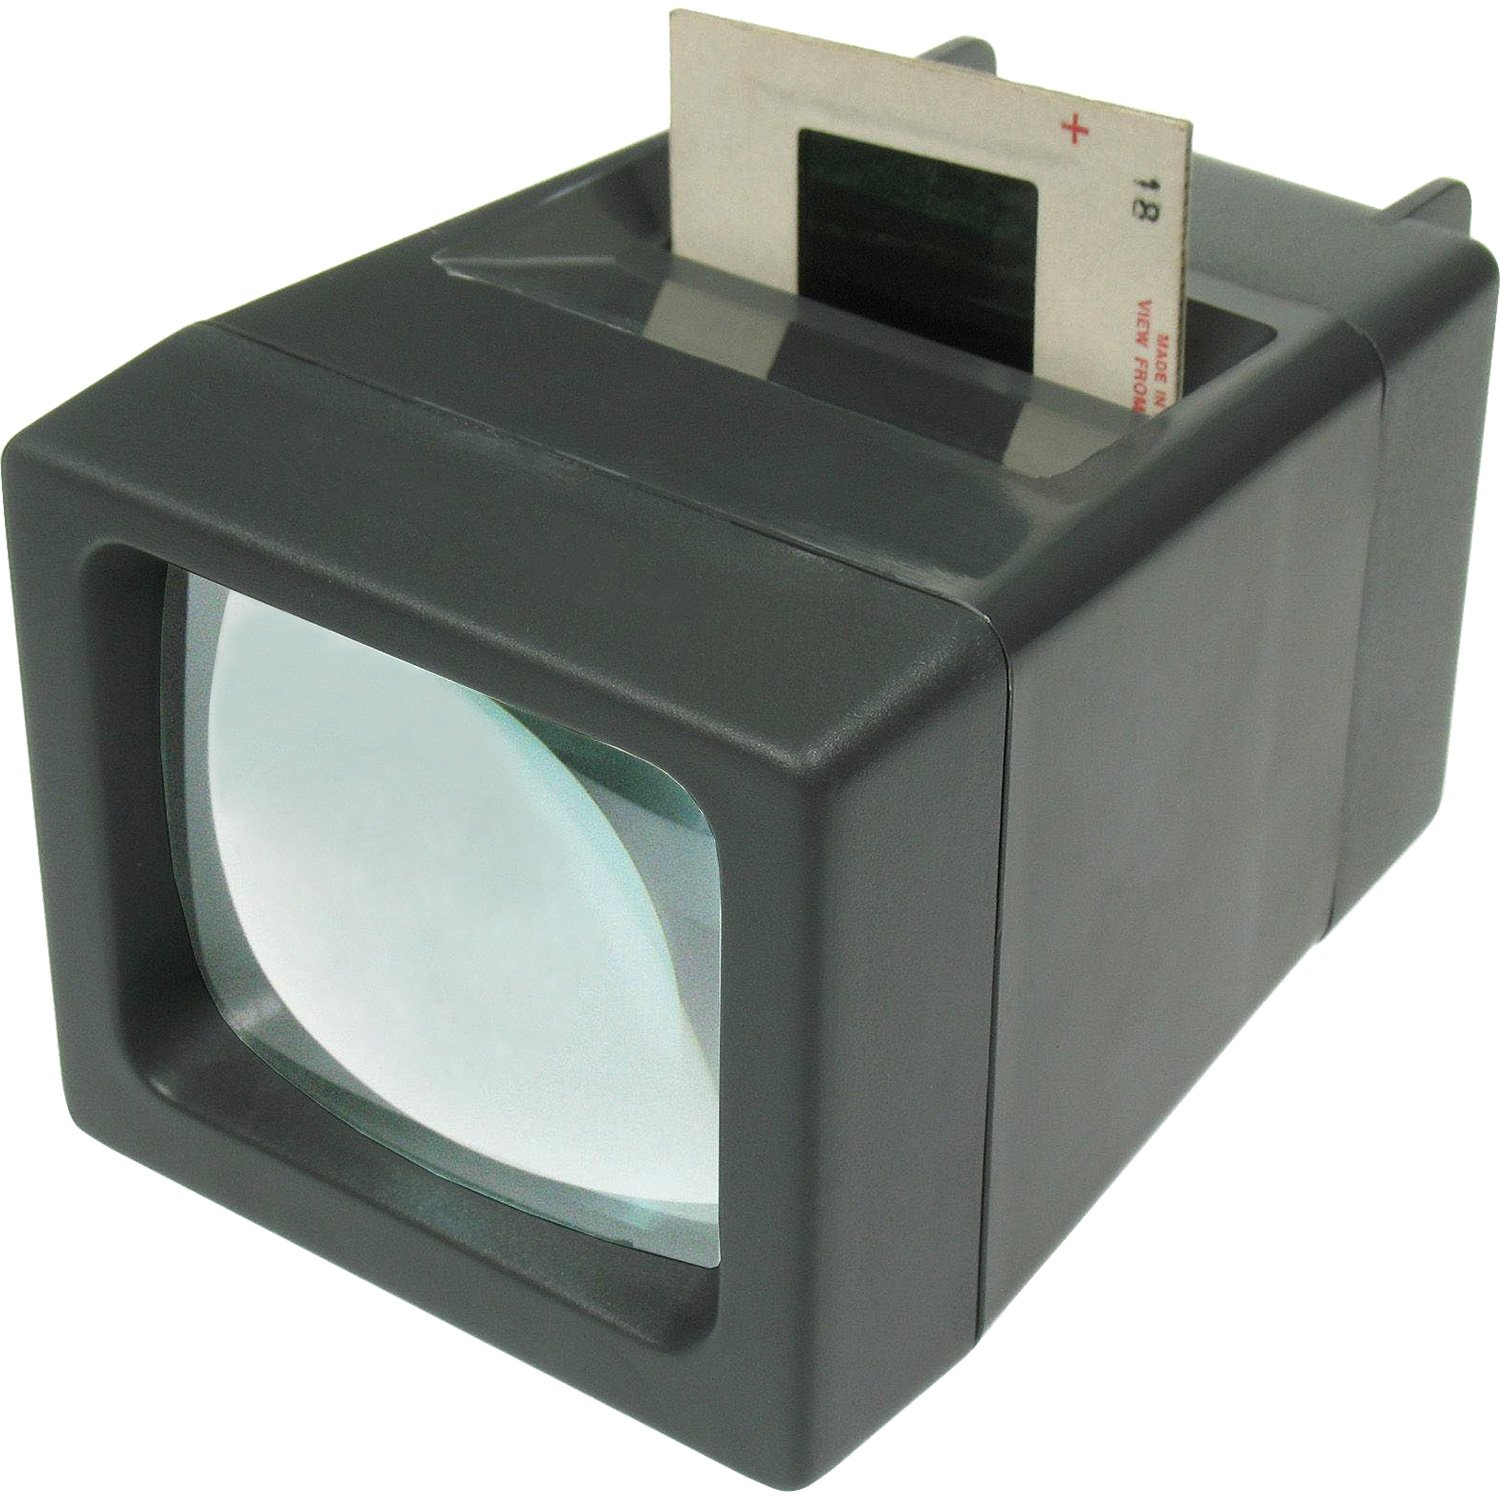 Zuma SV-2 LED Lighted 35mm Film Slide Viewer Z-SV-2